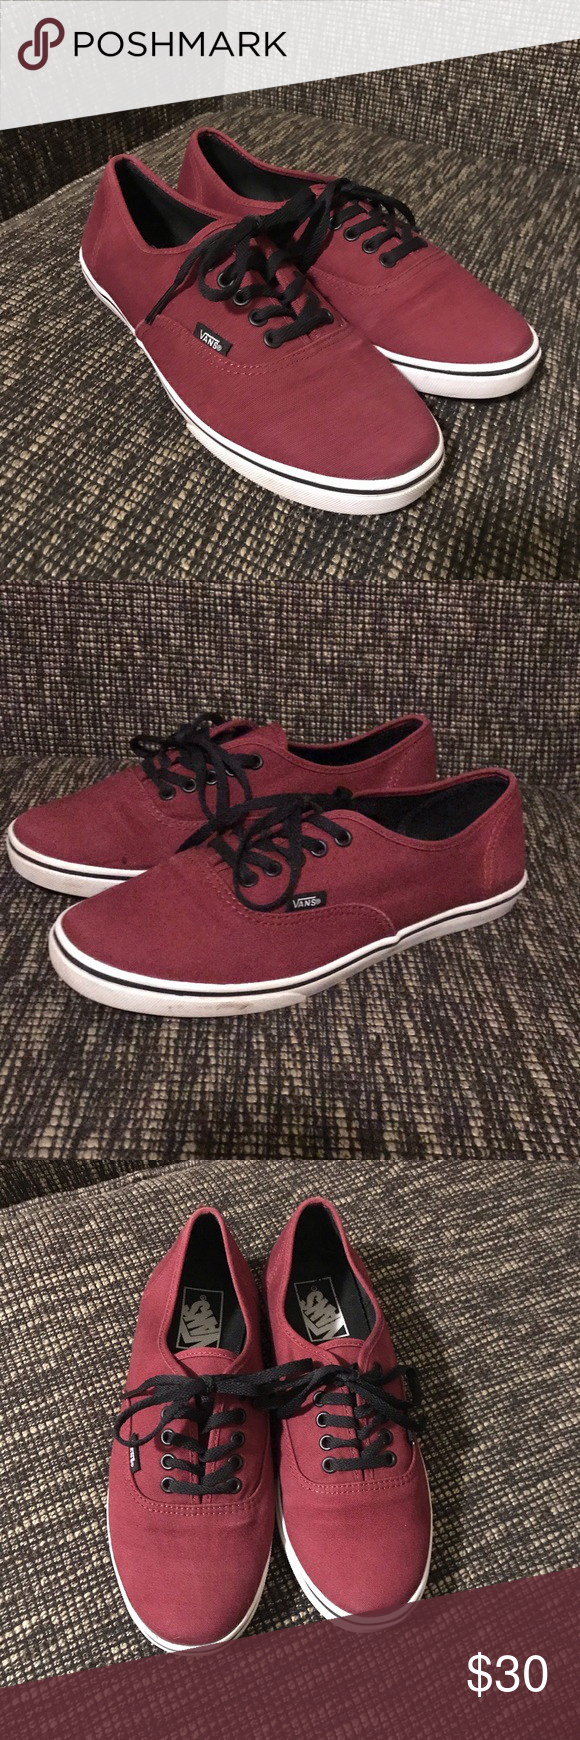 e0d1c2e2bba Maroon Vans Size 8 Great condition maroon colored Vans. Super adorable and  comfortable. Best